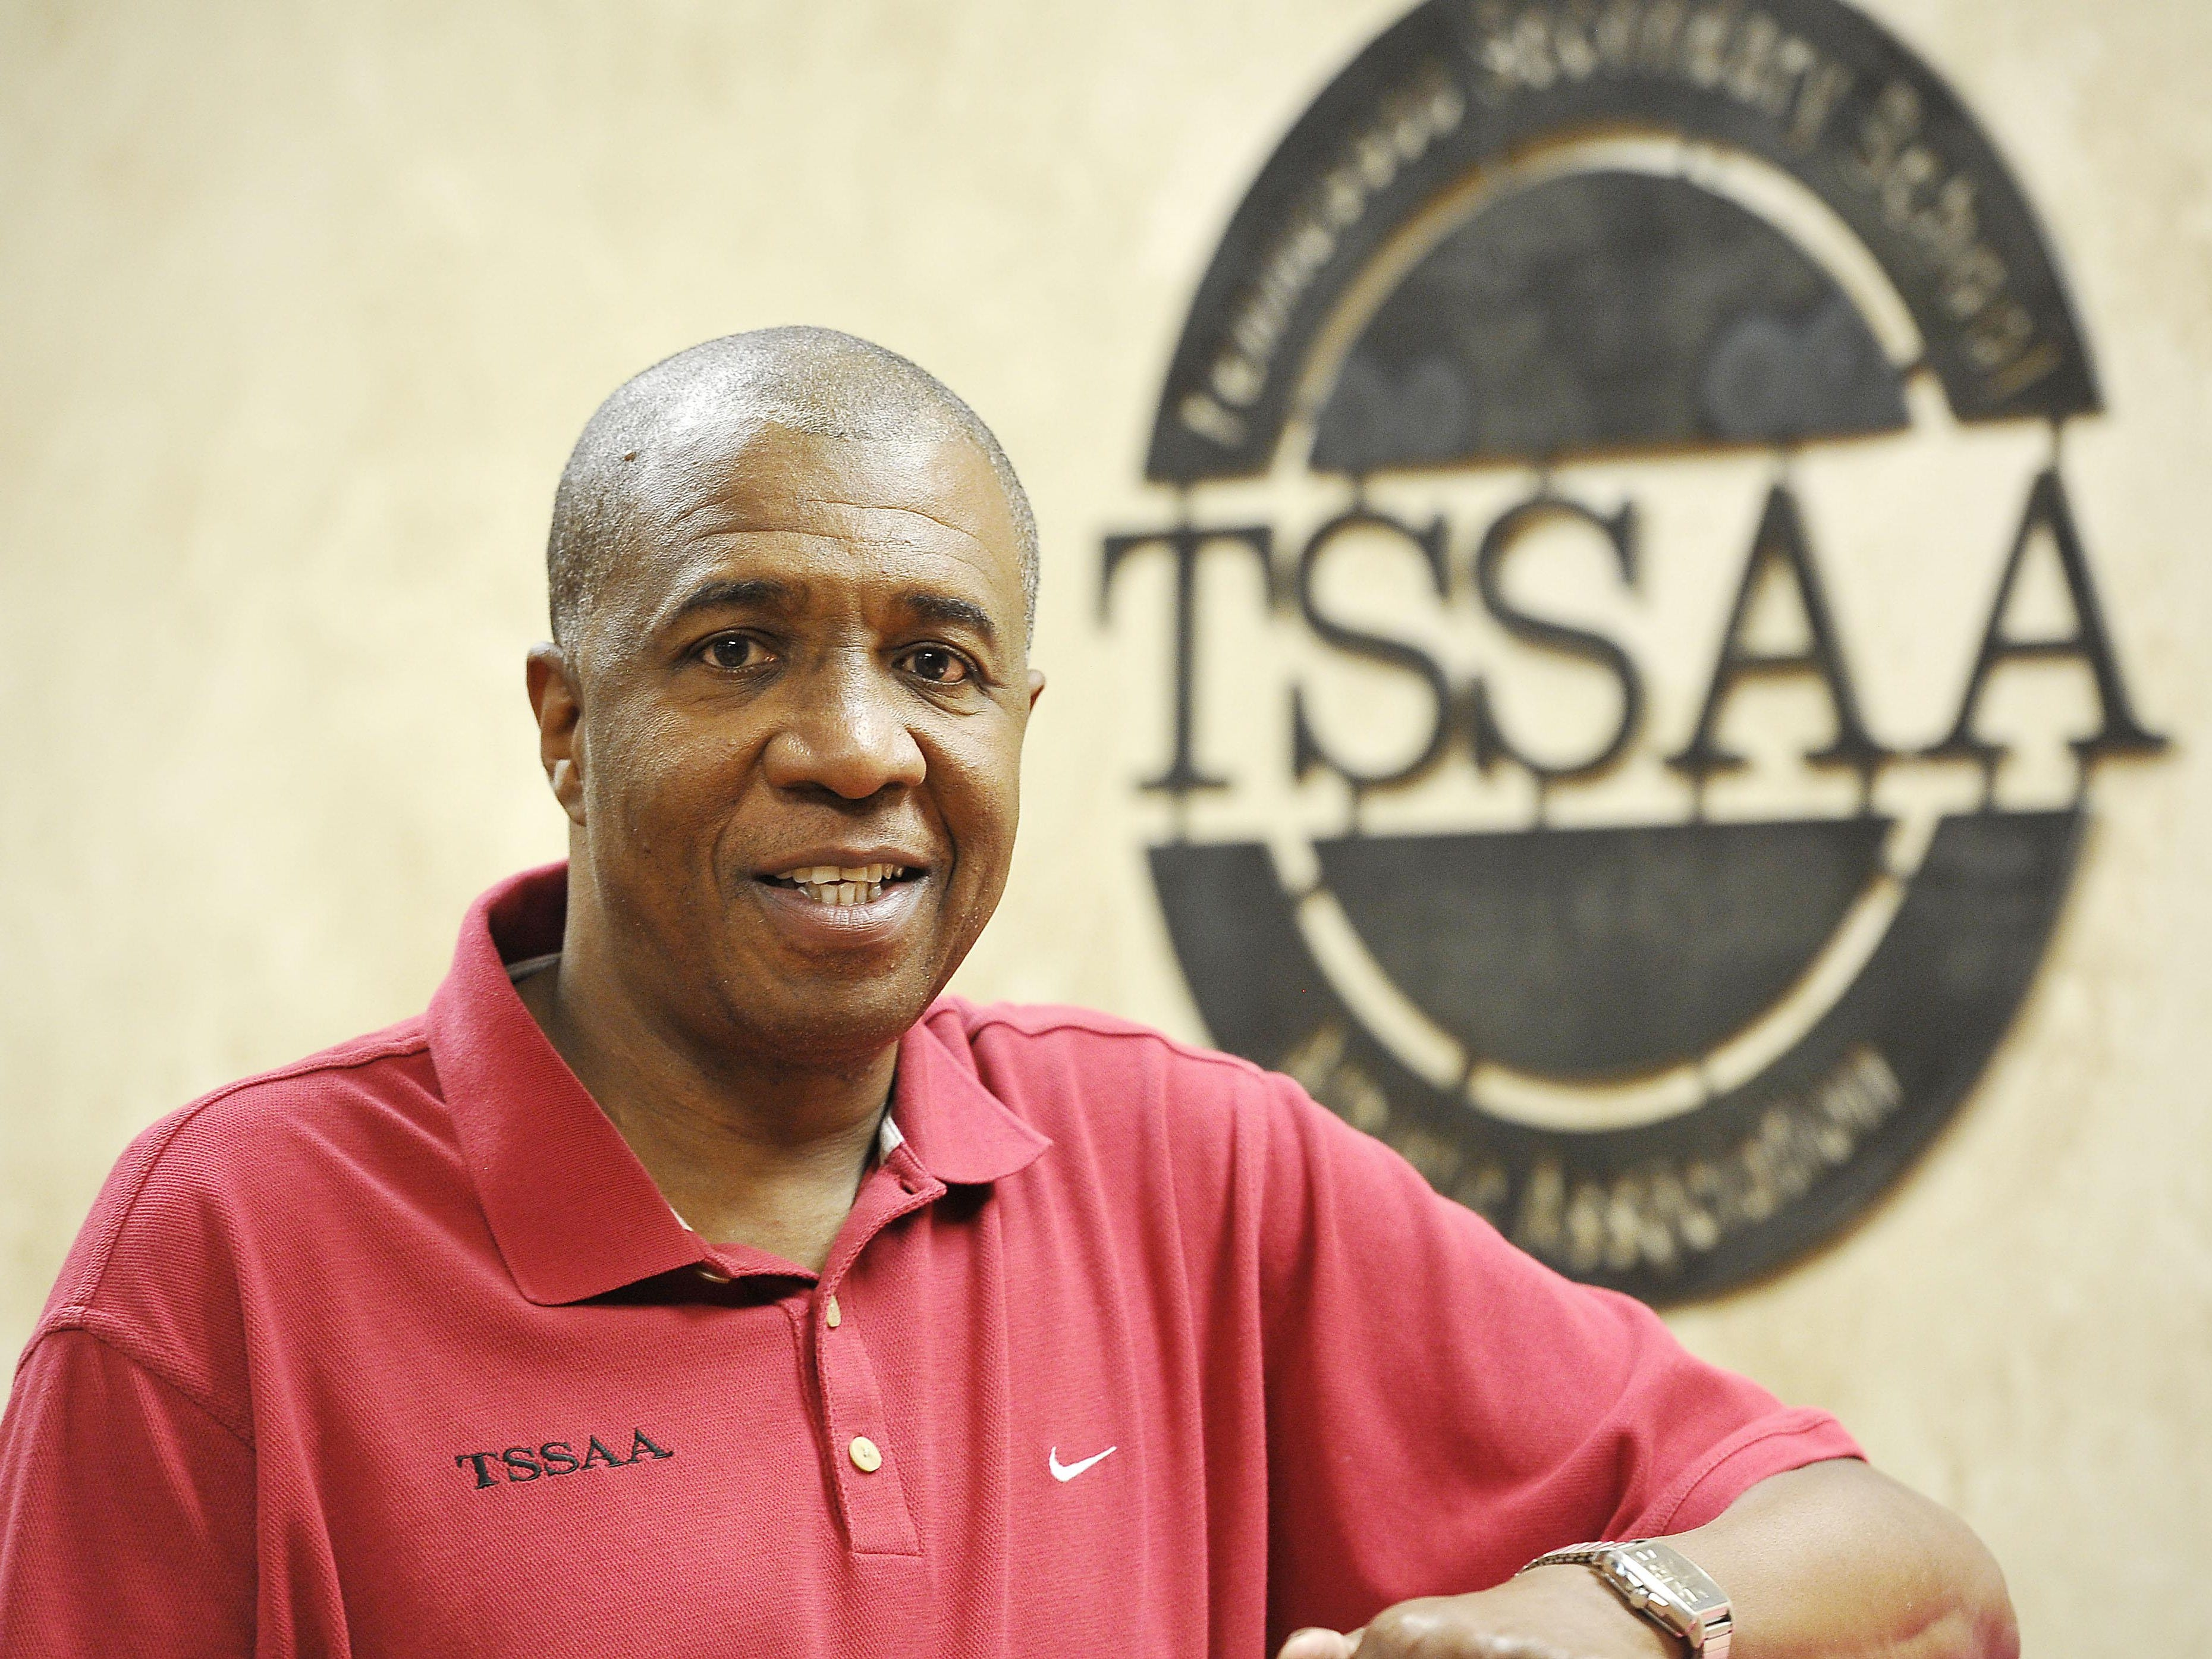 TSSAA Executive Director Bernard Childress is unable to predict how Thursday's vote will turn out.